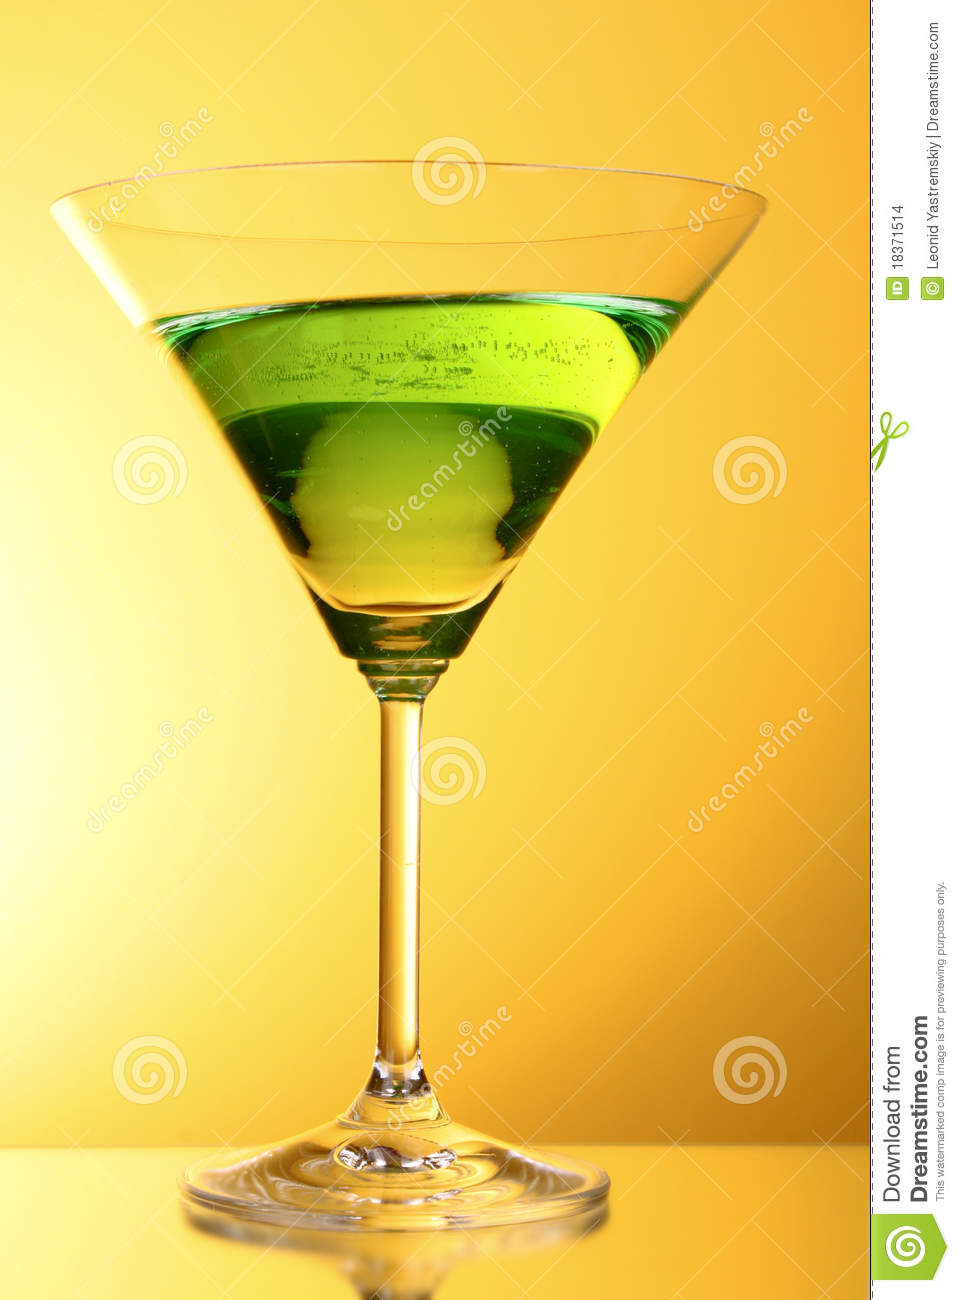 Glass With A Green Alcoholic Beverage Stock Photo - Image ...